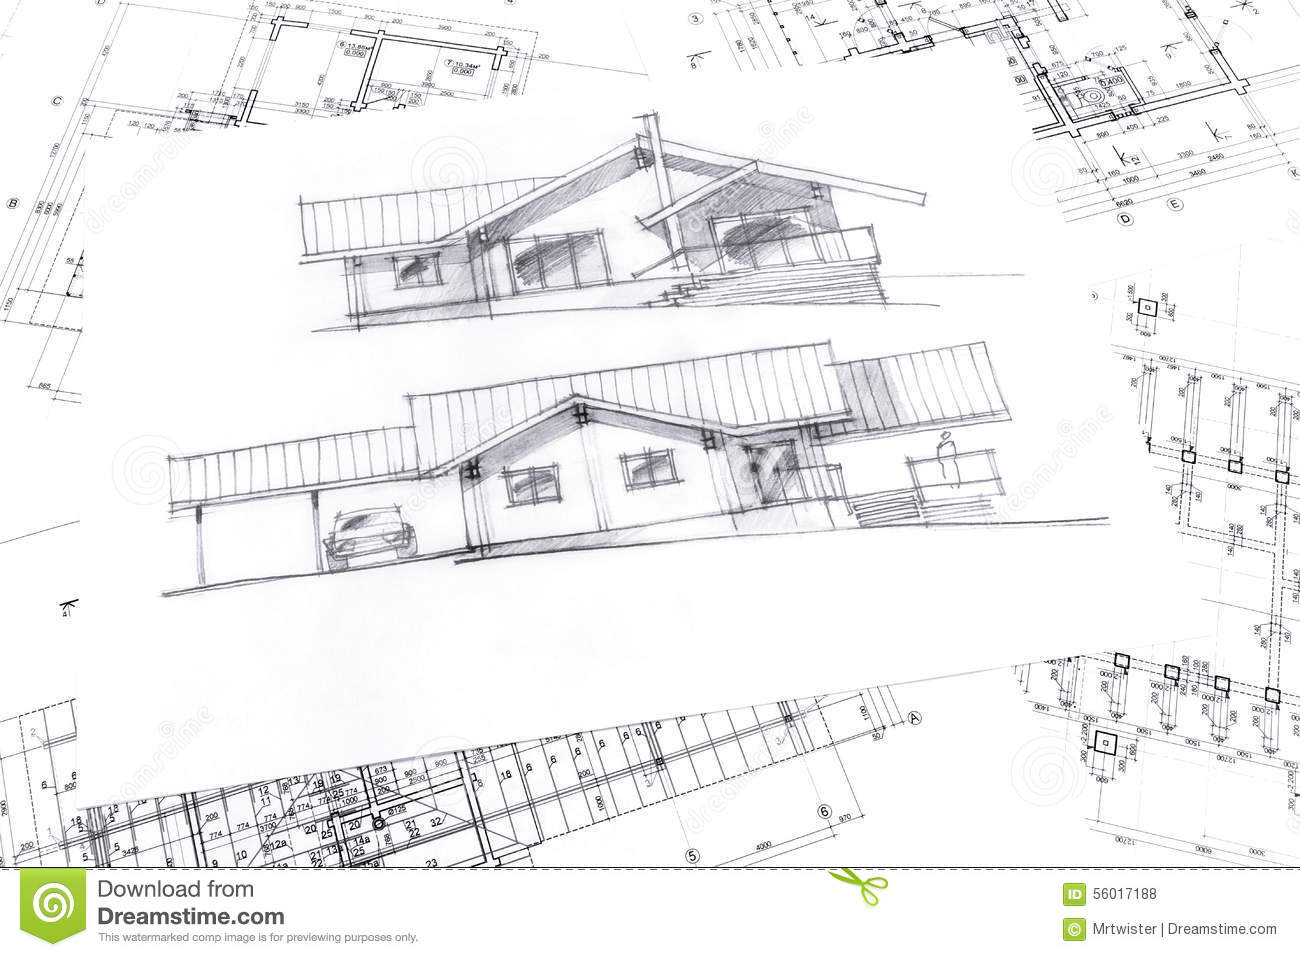 Sketch with technical project drawings stock illustration for How to draw architectural plans by hand